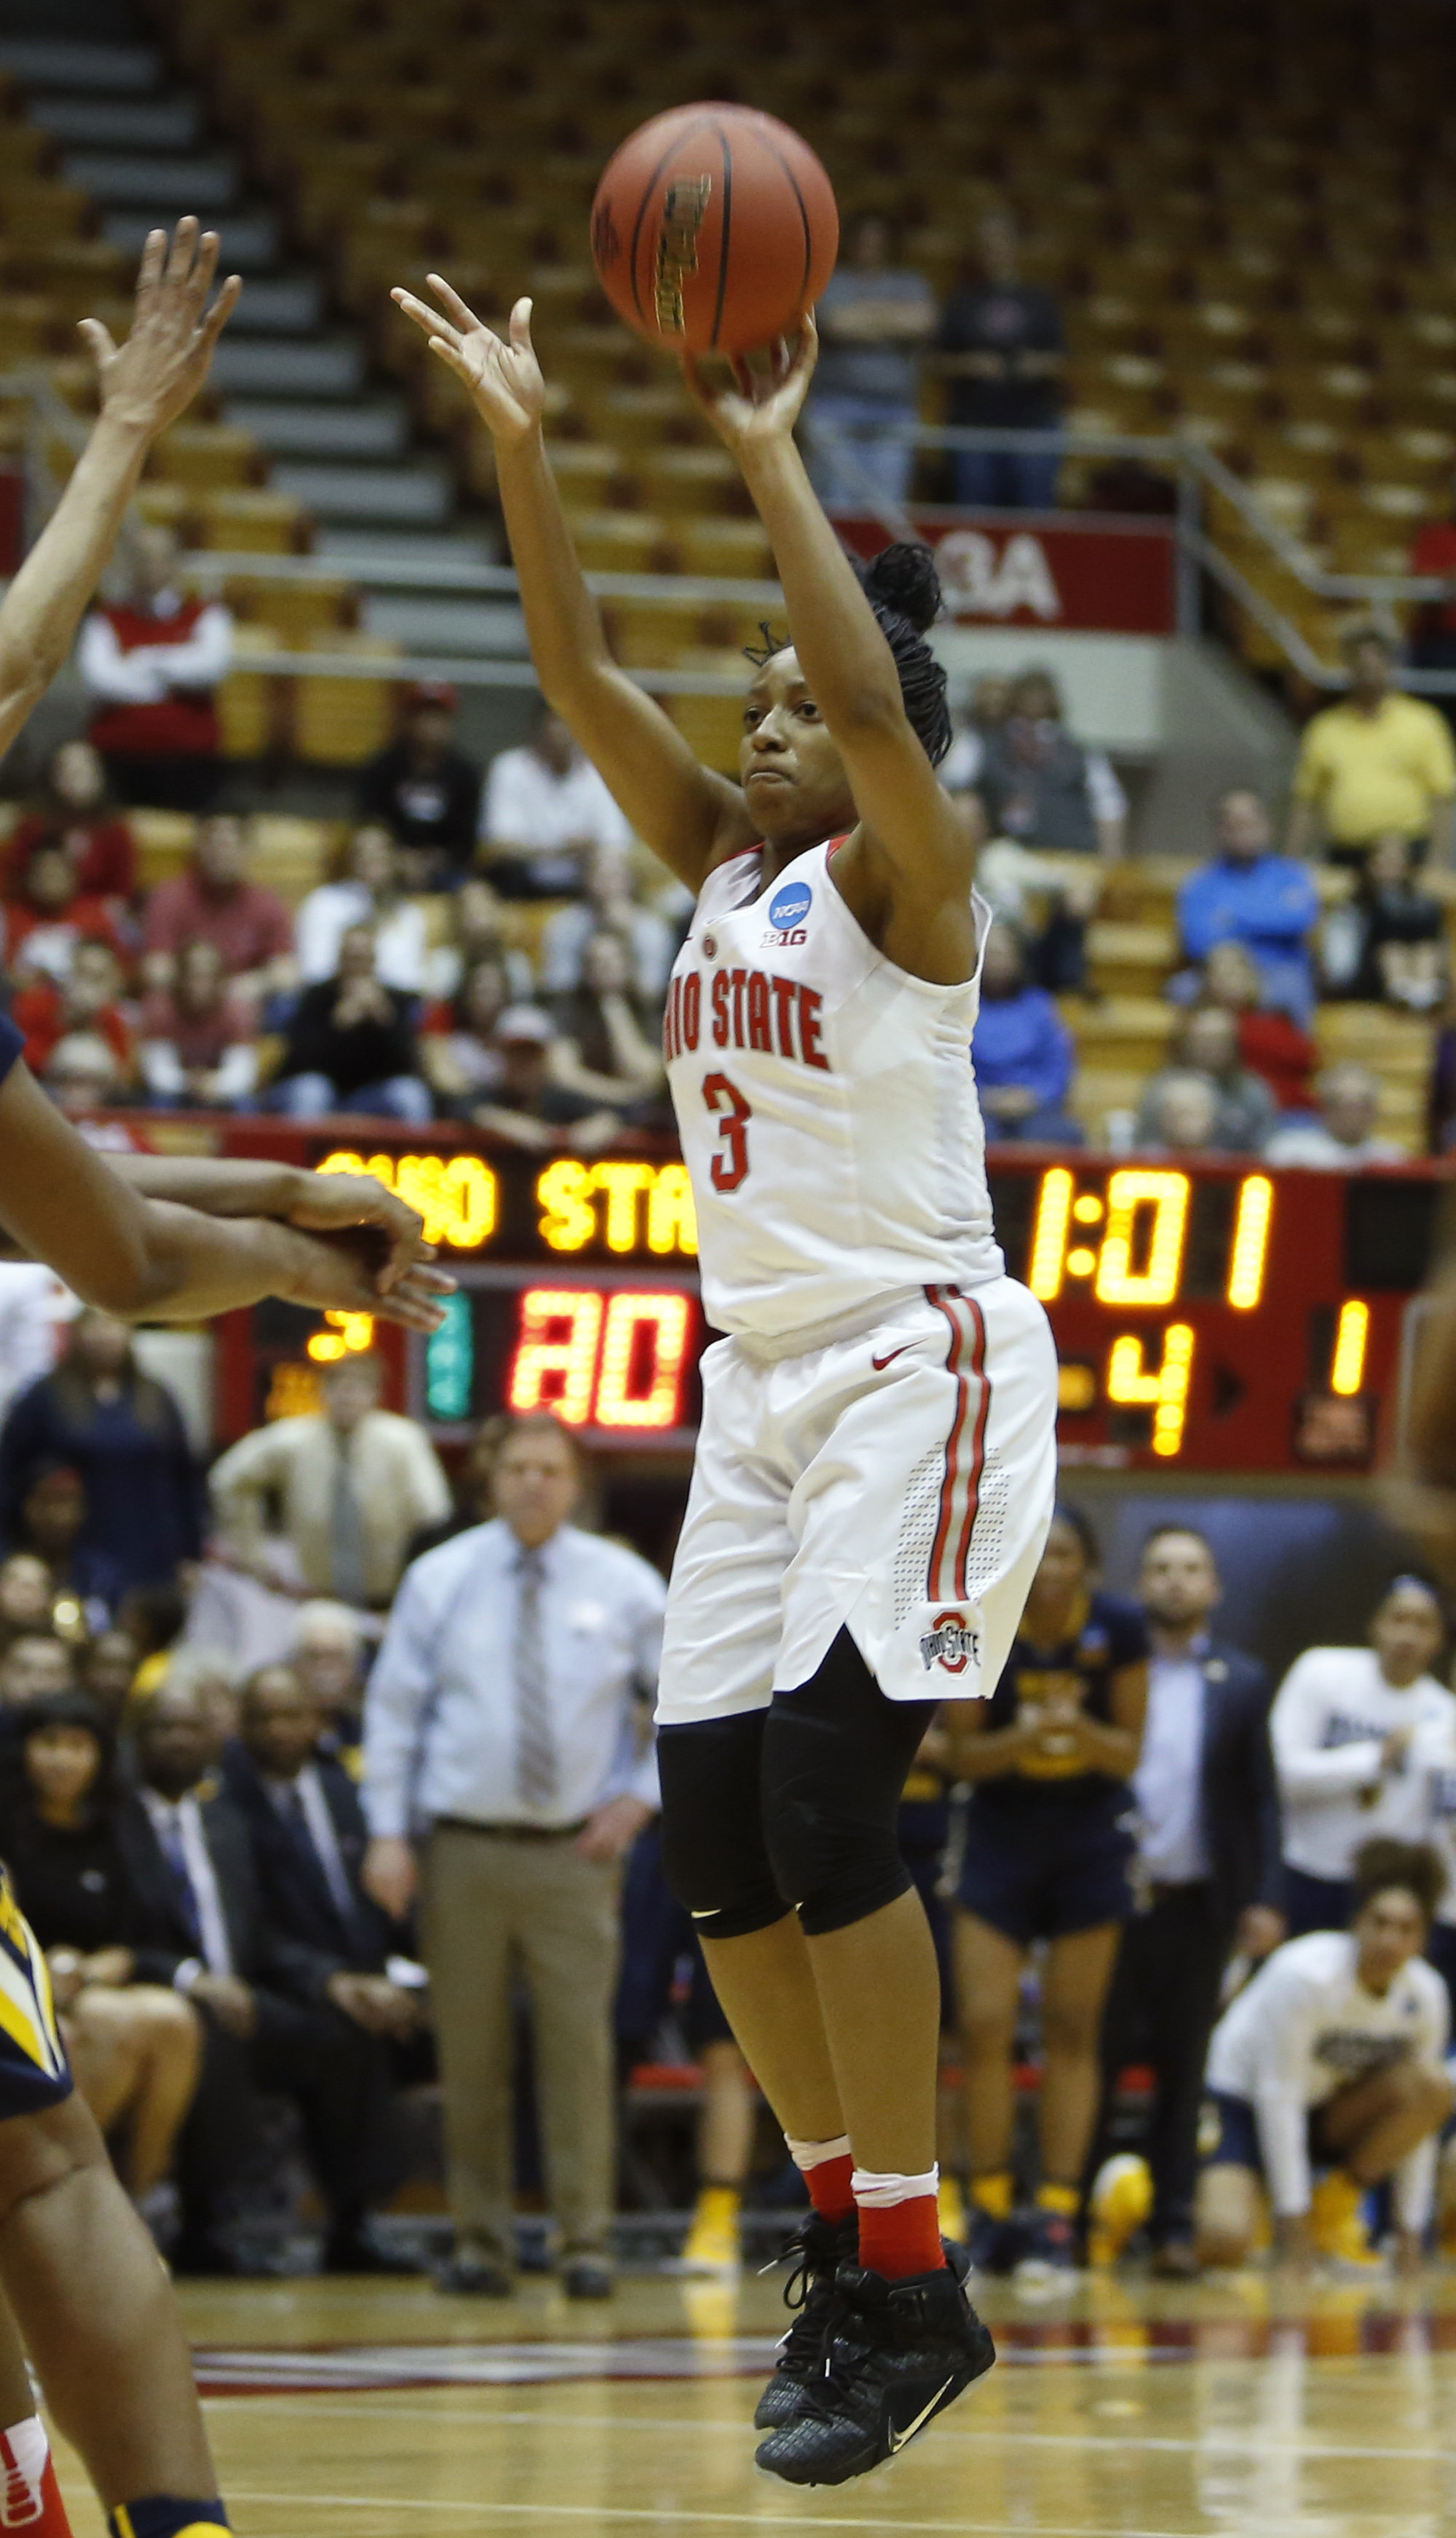 Ohio State's Kelsey Mitchell takes a 3-point shot against West Virginia during a second-round women's college basketball game in the NCAA Tournament Sunday, March 20, 2016, in Columbus, Ohio. (AP Photo/Jay LaPrete)